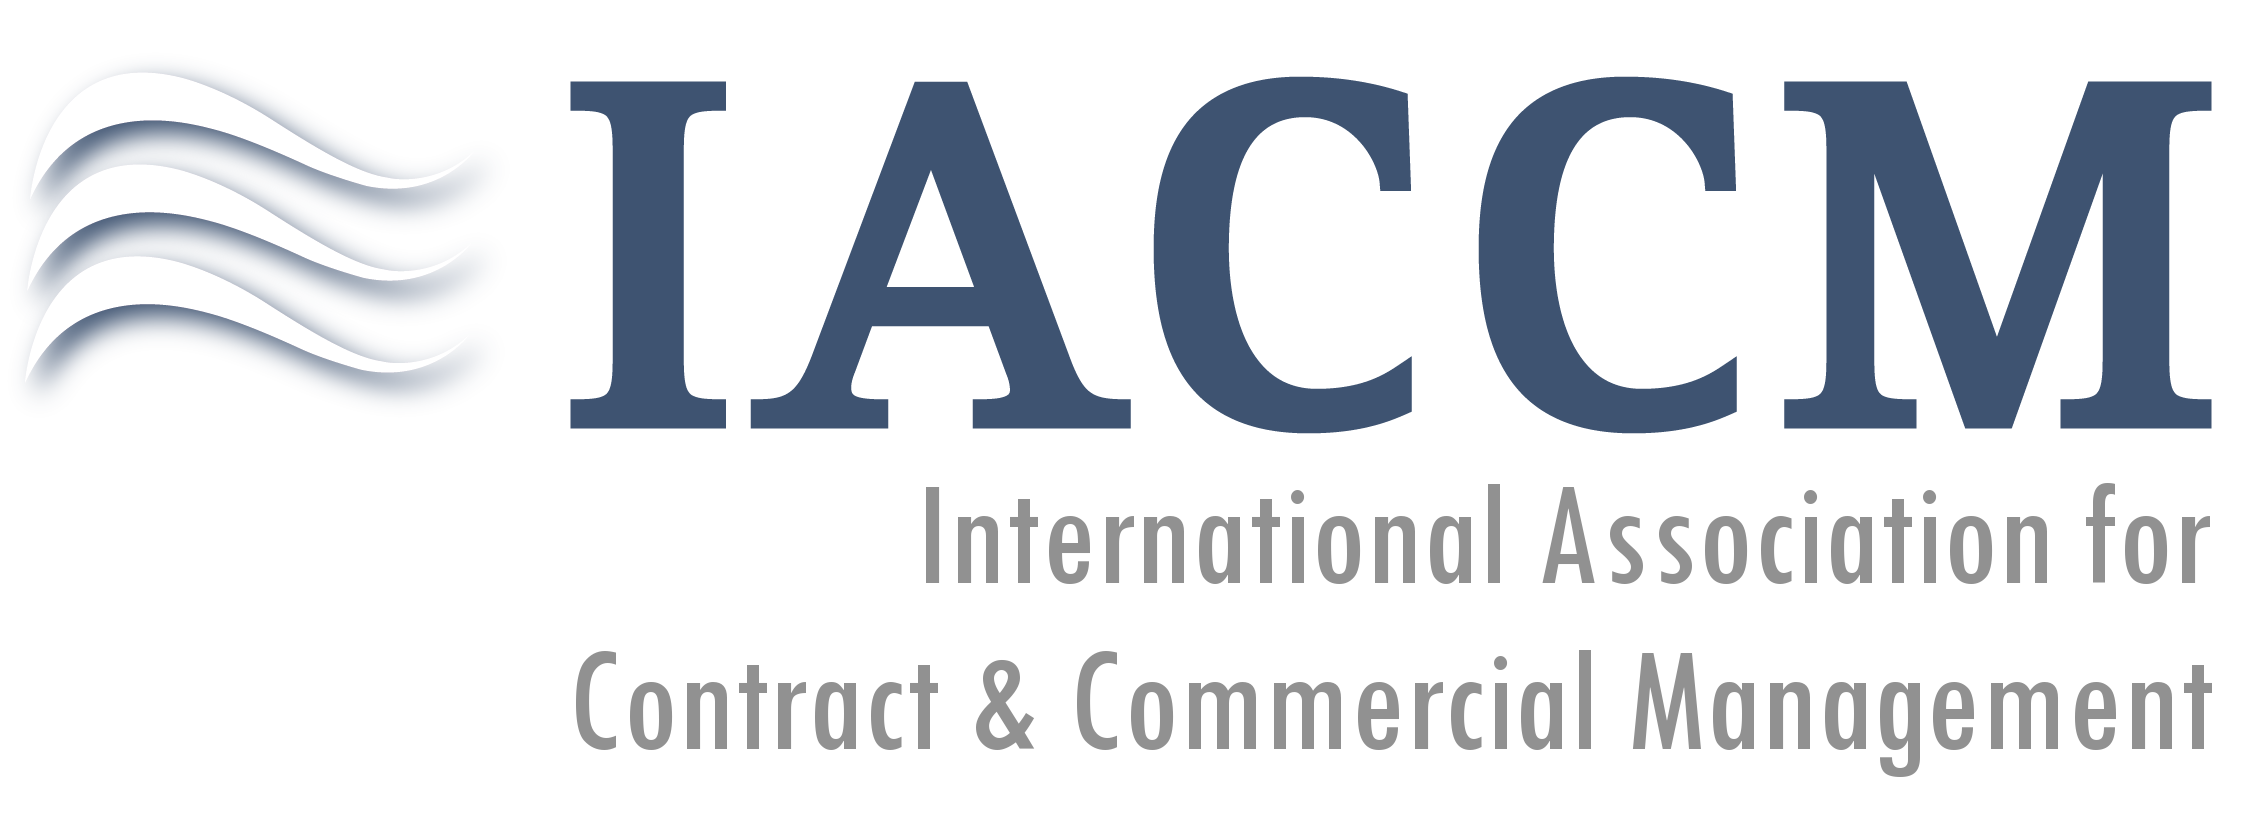 IACCM - International Association for Contract & Commercial Management